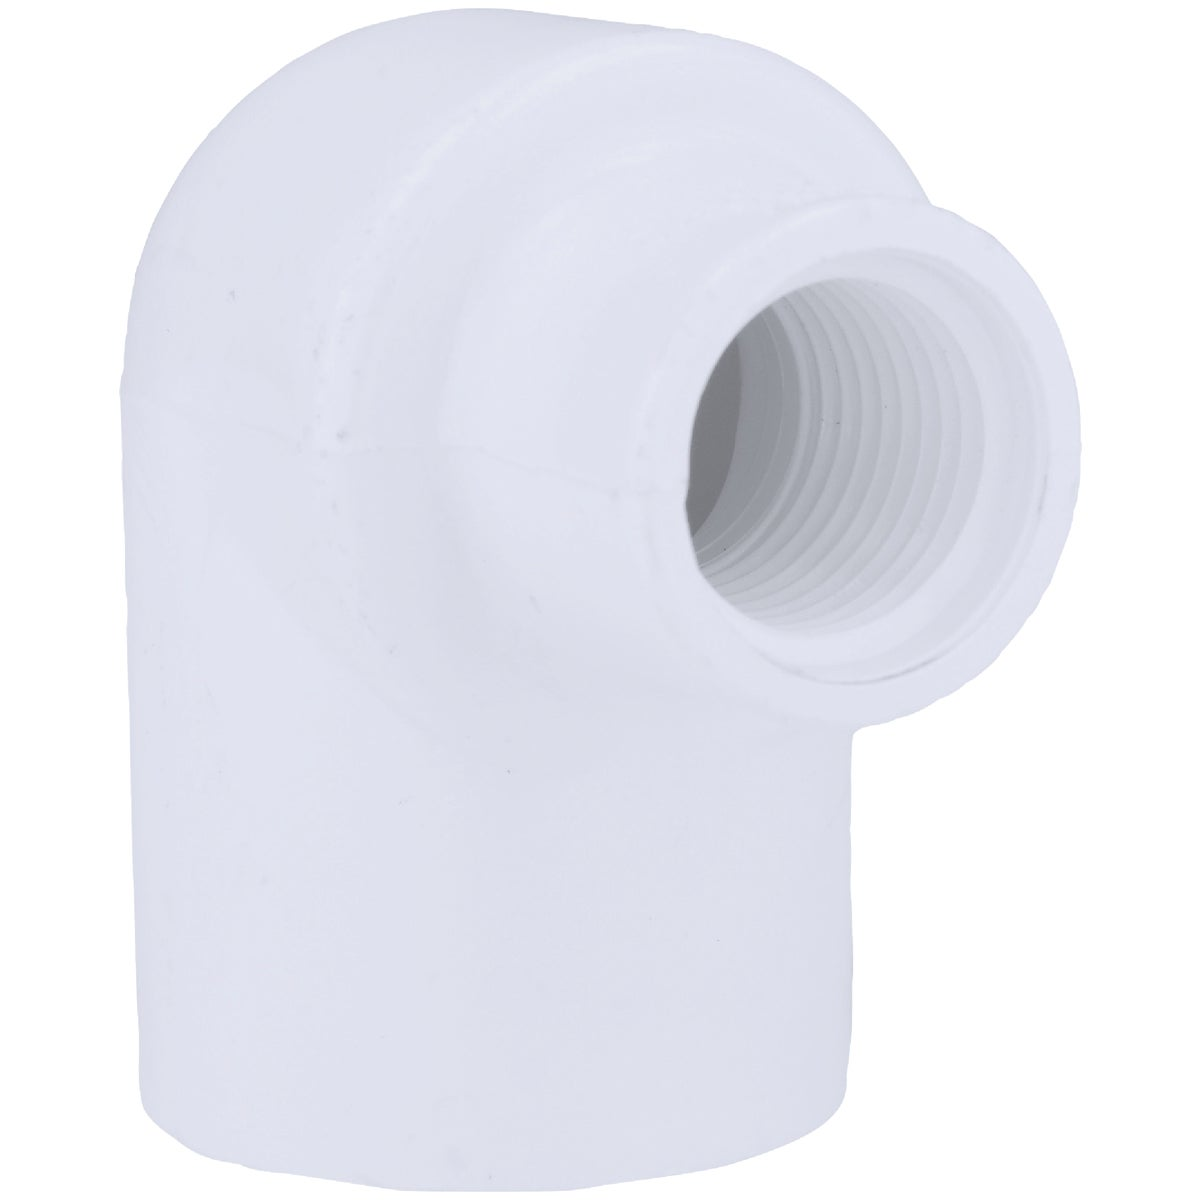 1X1/2 PVC SXFIP ELBOW - 34115 by Genova Inc